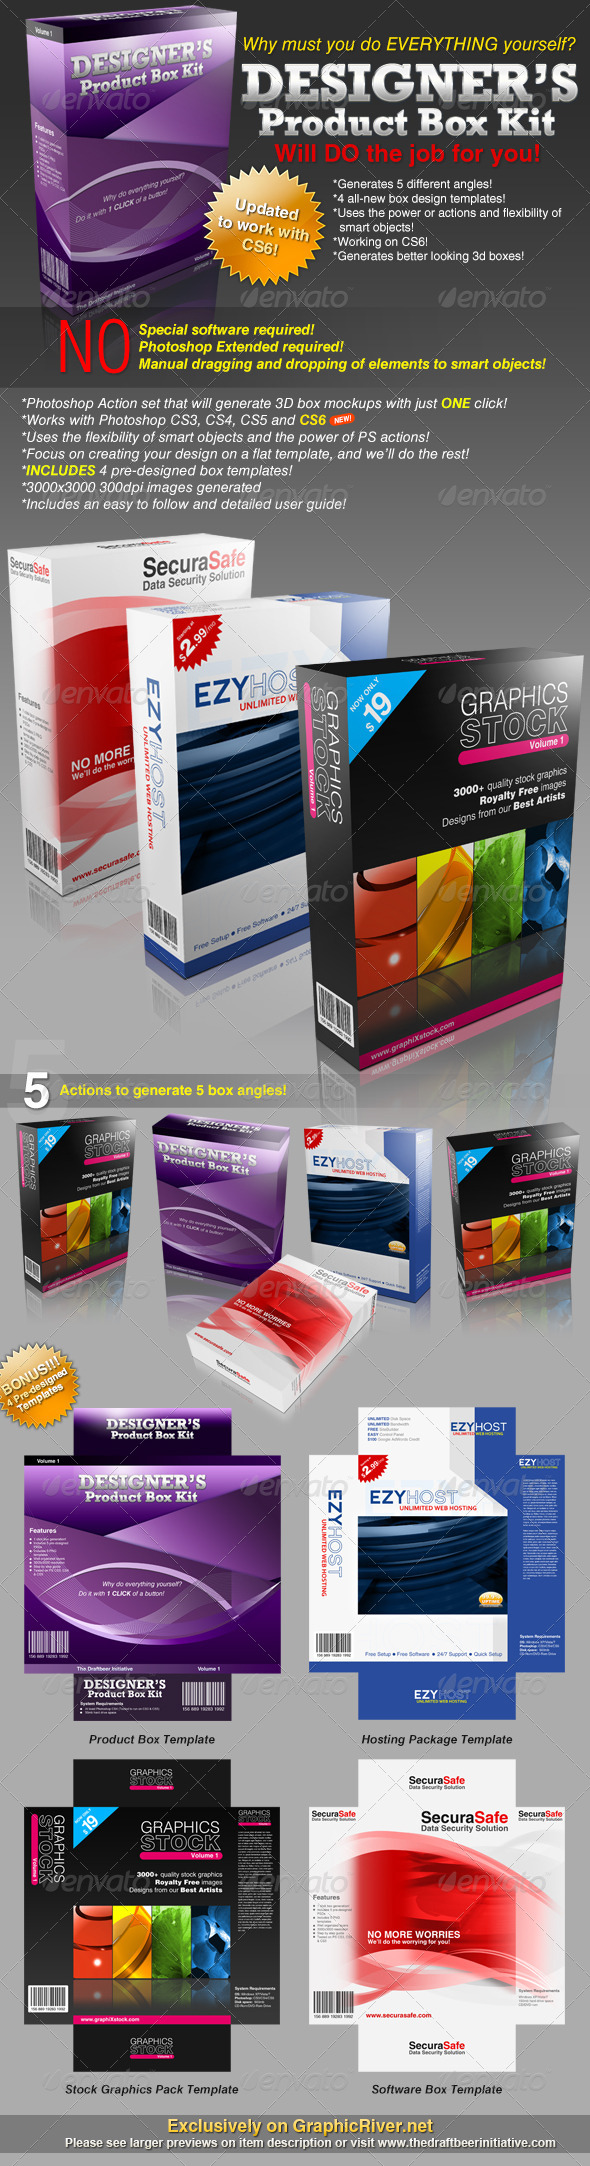 Designer's Product Box Kit (Action+Templates set) - Photoshop Add-ons